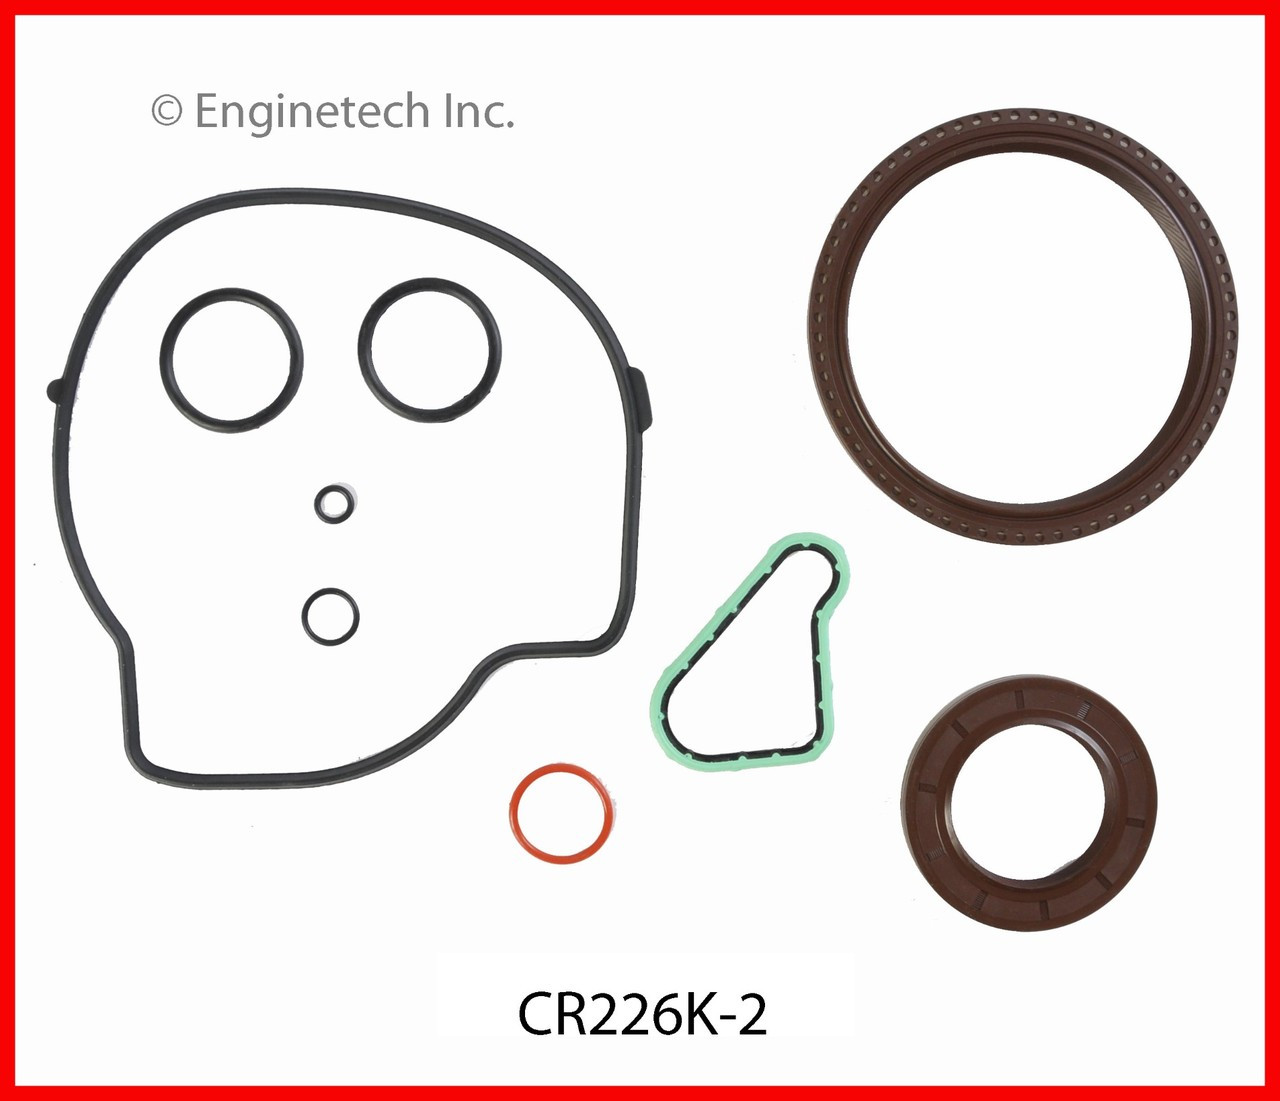 hight resolution of 2006 mitsubishi raider 3 7l engine gasket set cr226k 2 14